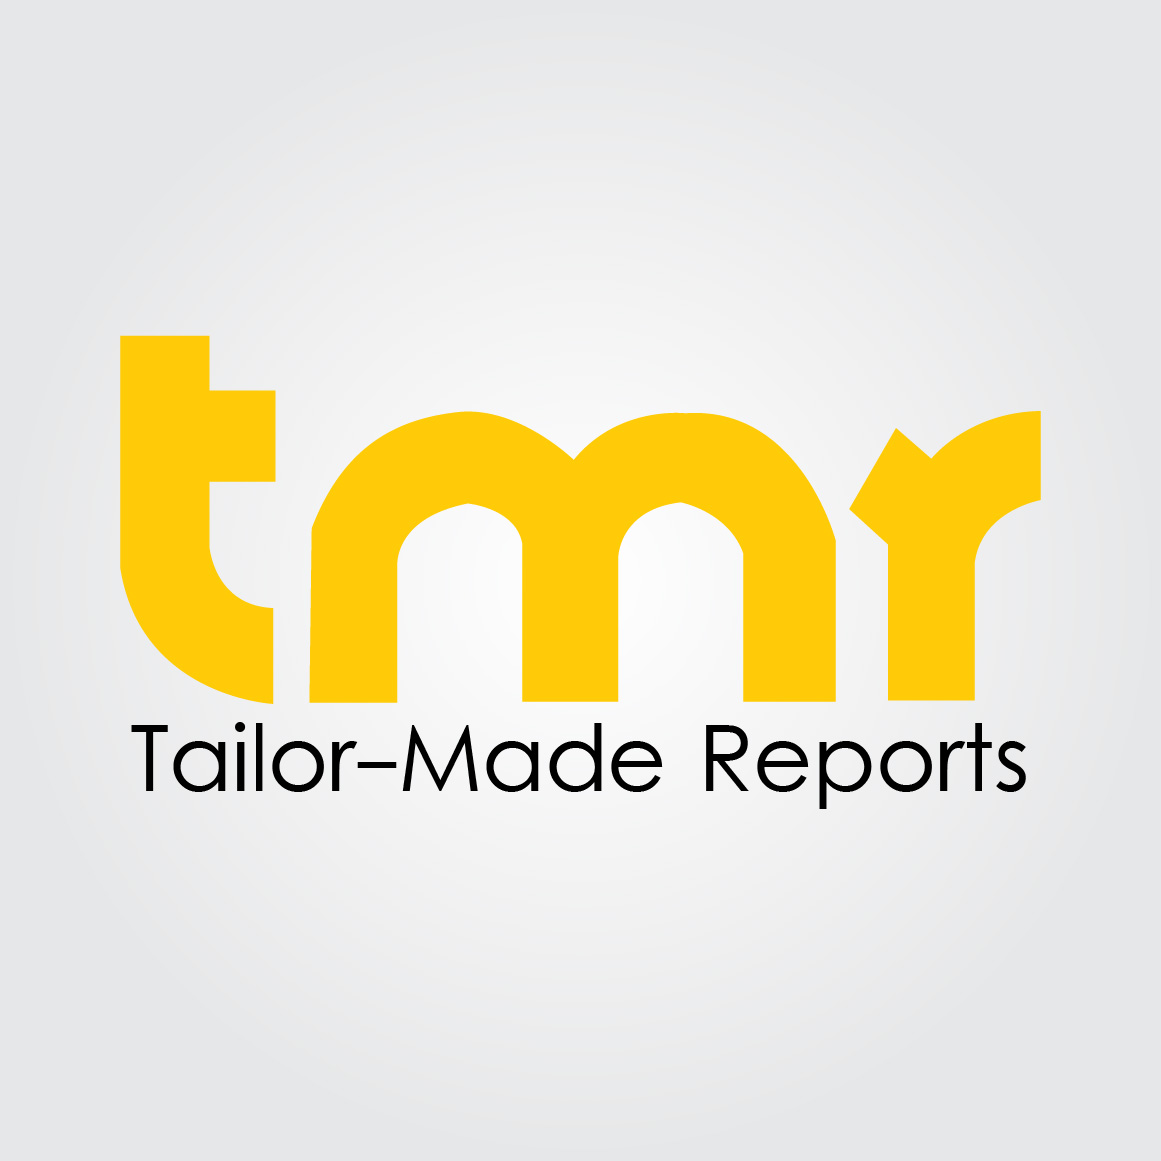 EMC Shielding and Test Equipment Market is estimated to gather promising sales opportunities by 2029